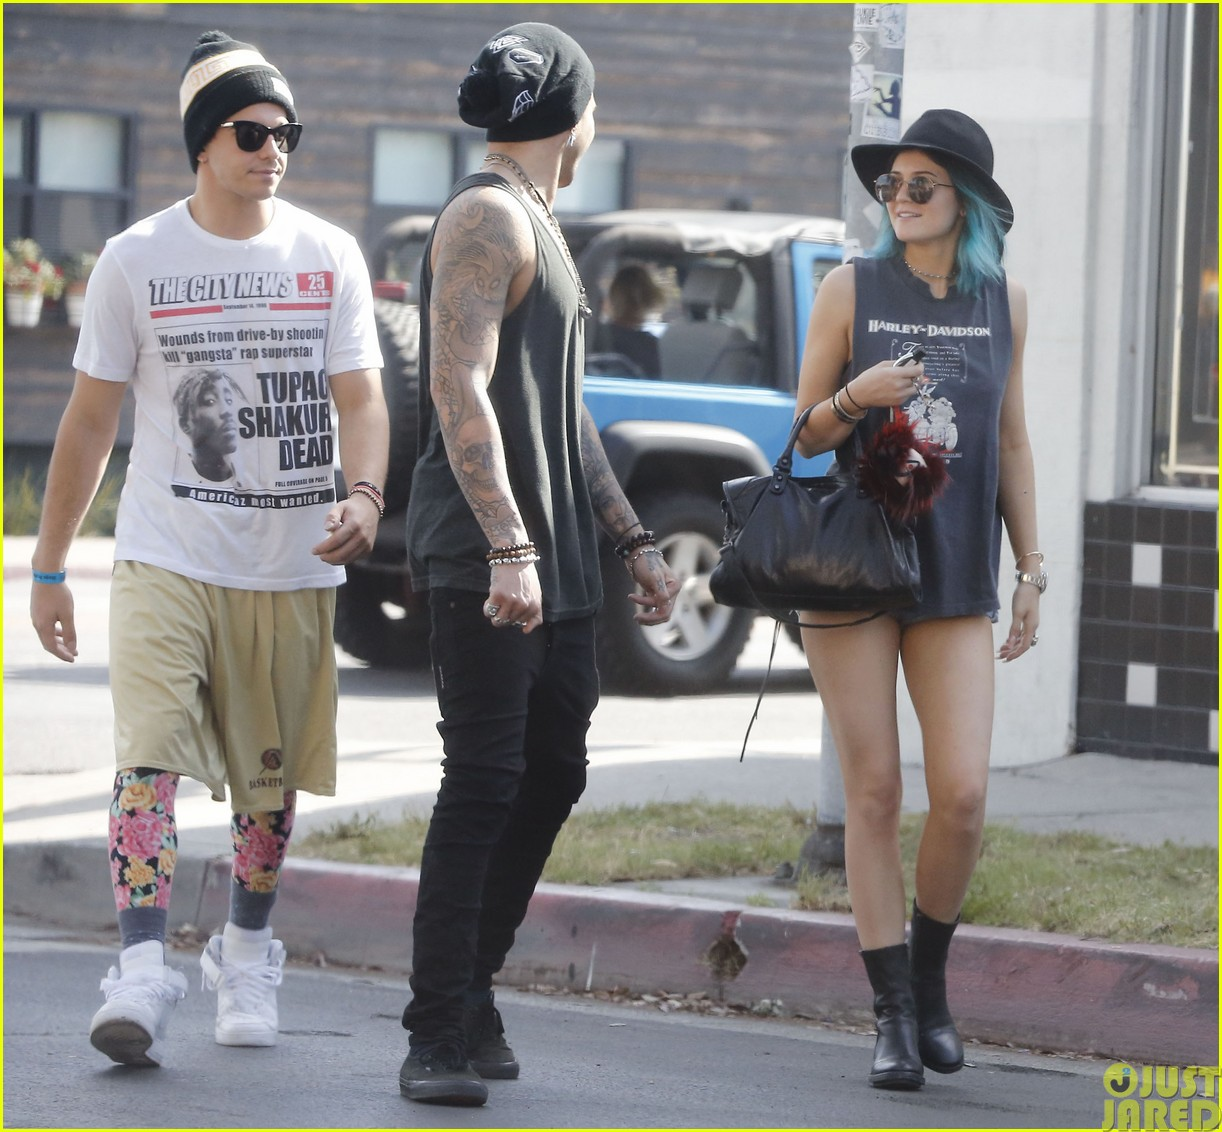 kendall and kylie jenner will be hosting the upcoming much music video awards163116396